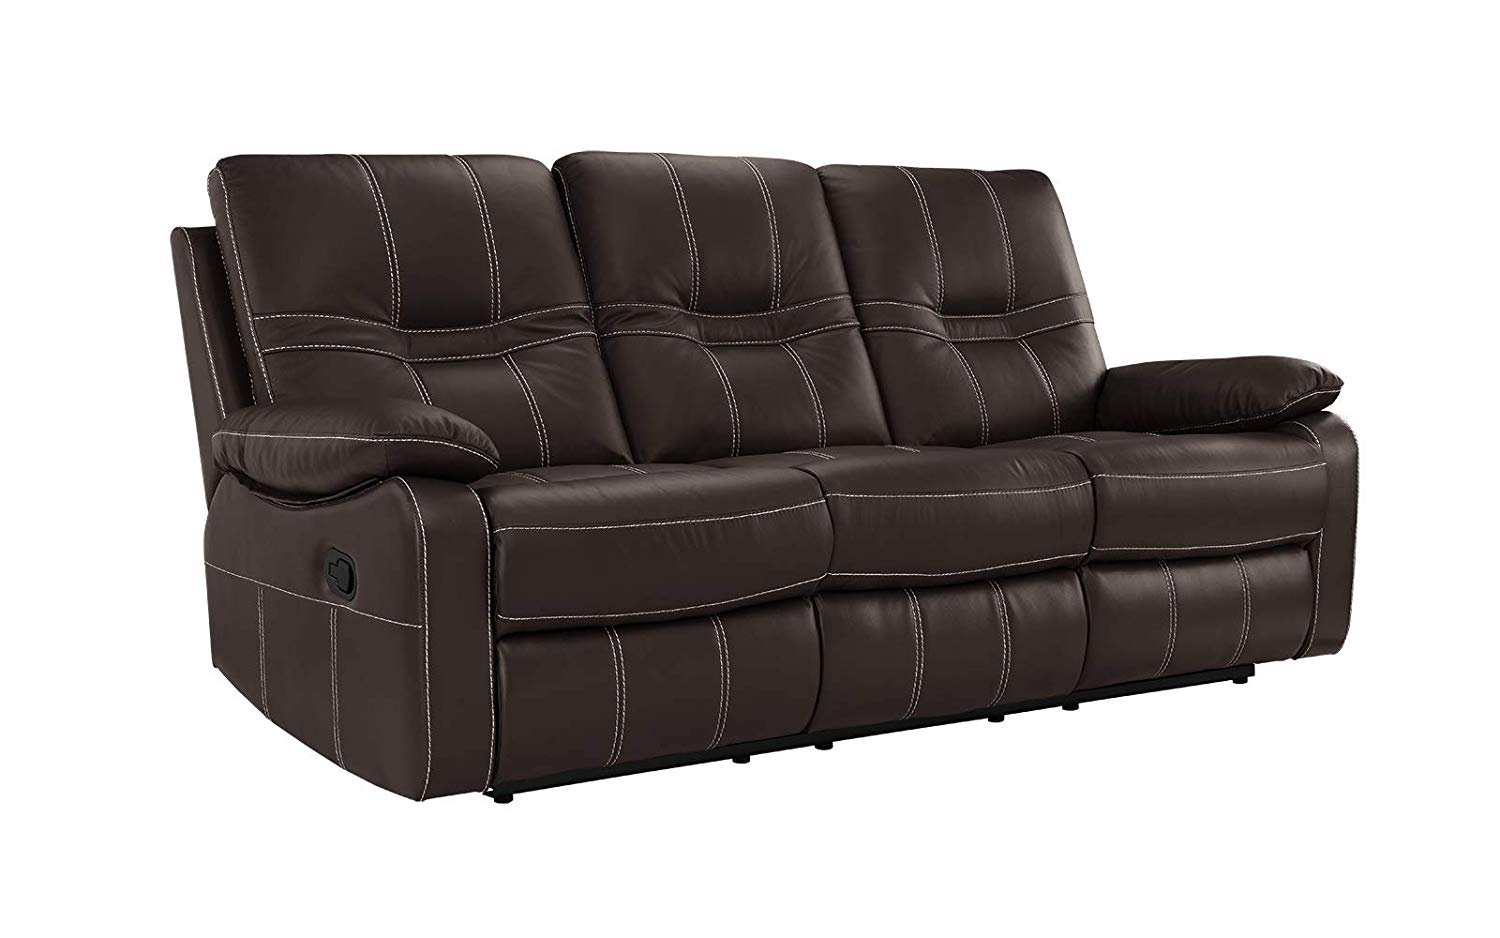 Traditional Upholstered Dark Brown Leather Match Recliner Sofa 3 ...